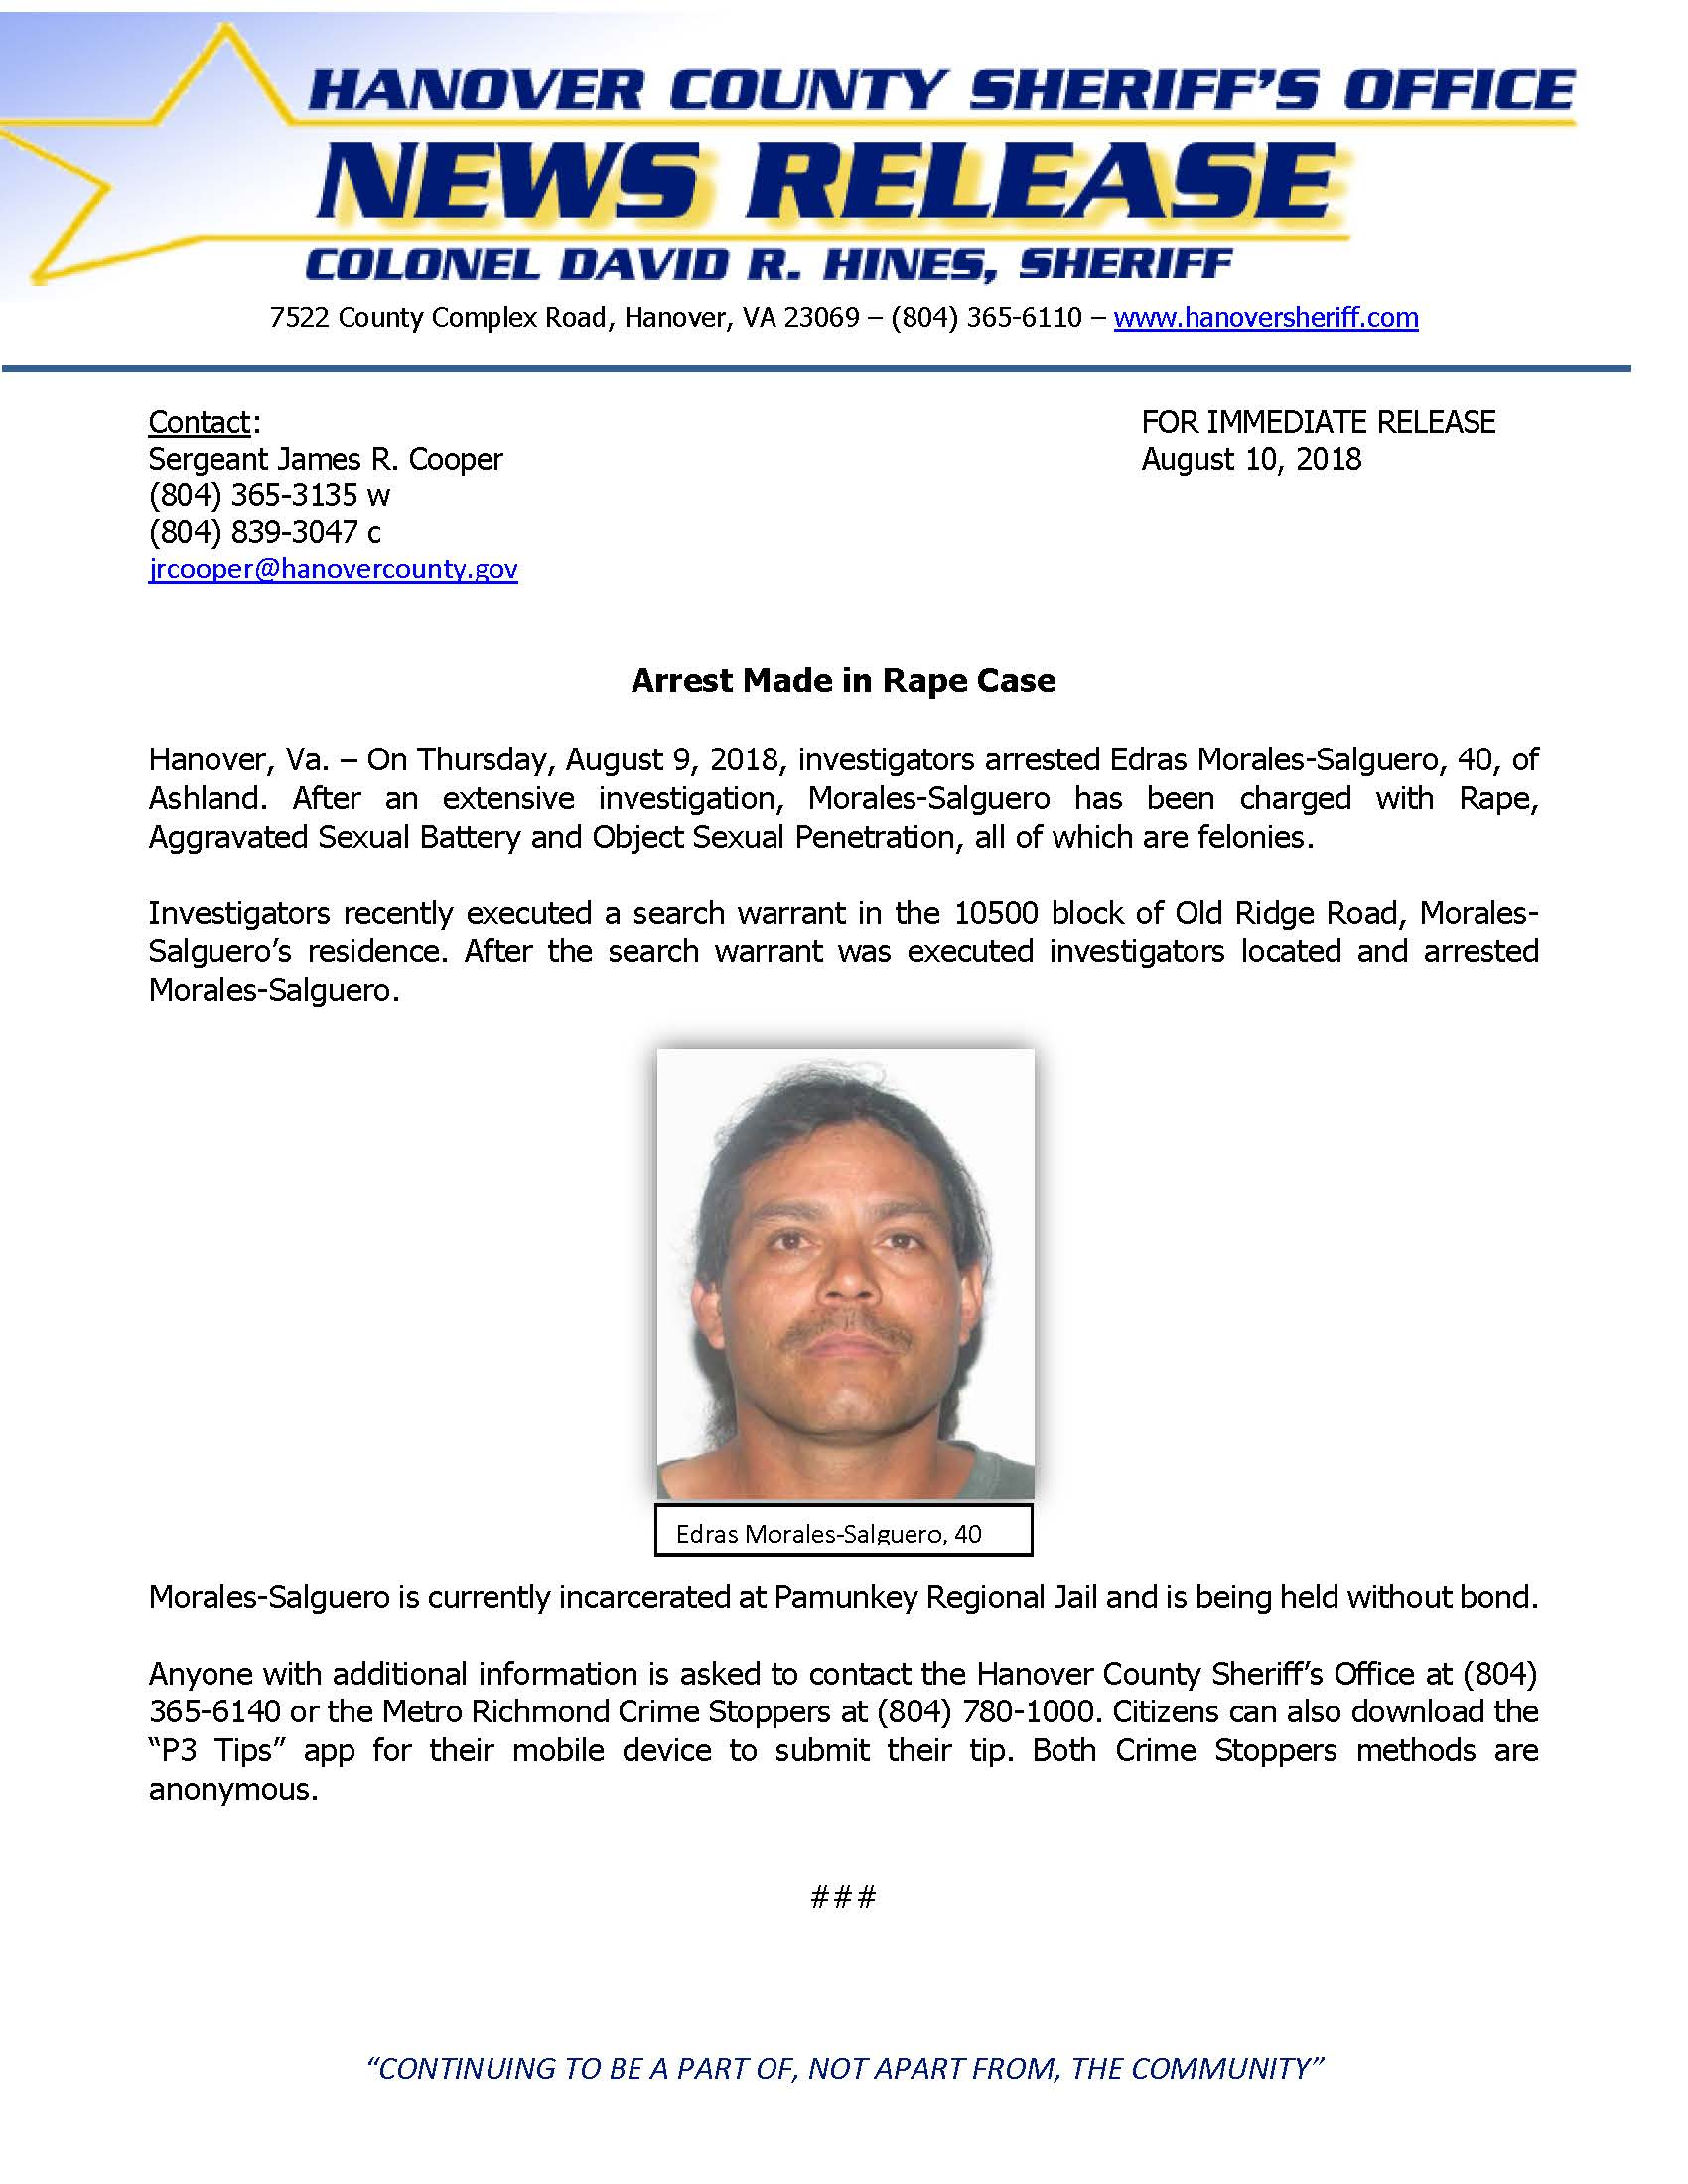 HCSO - Arrest Made in Rape Case- August 10, 2018